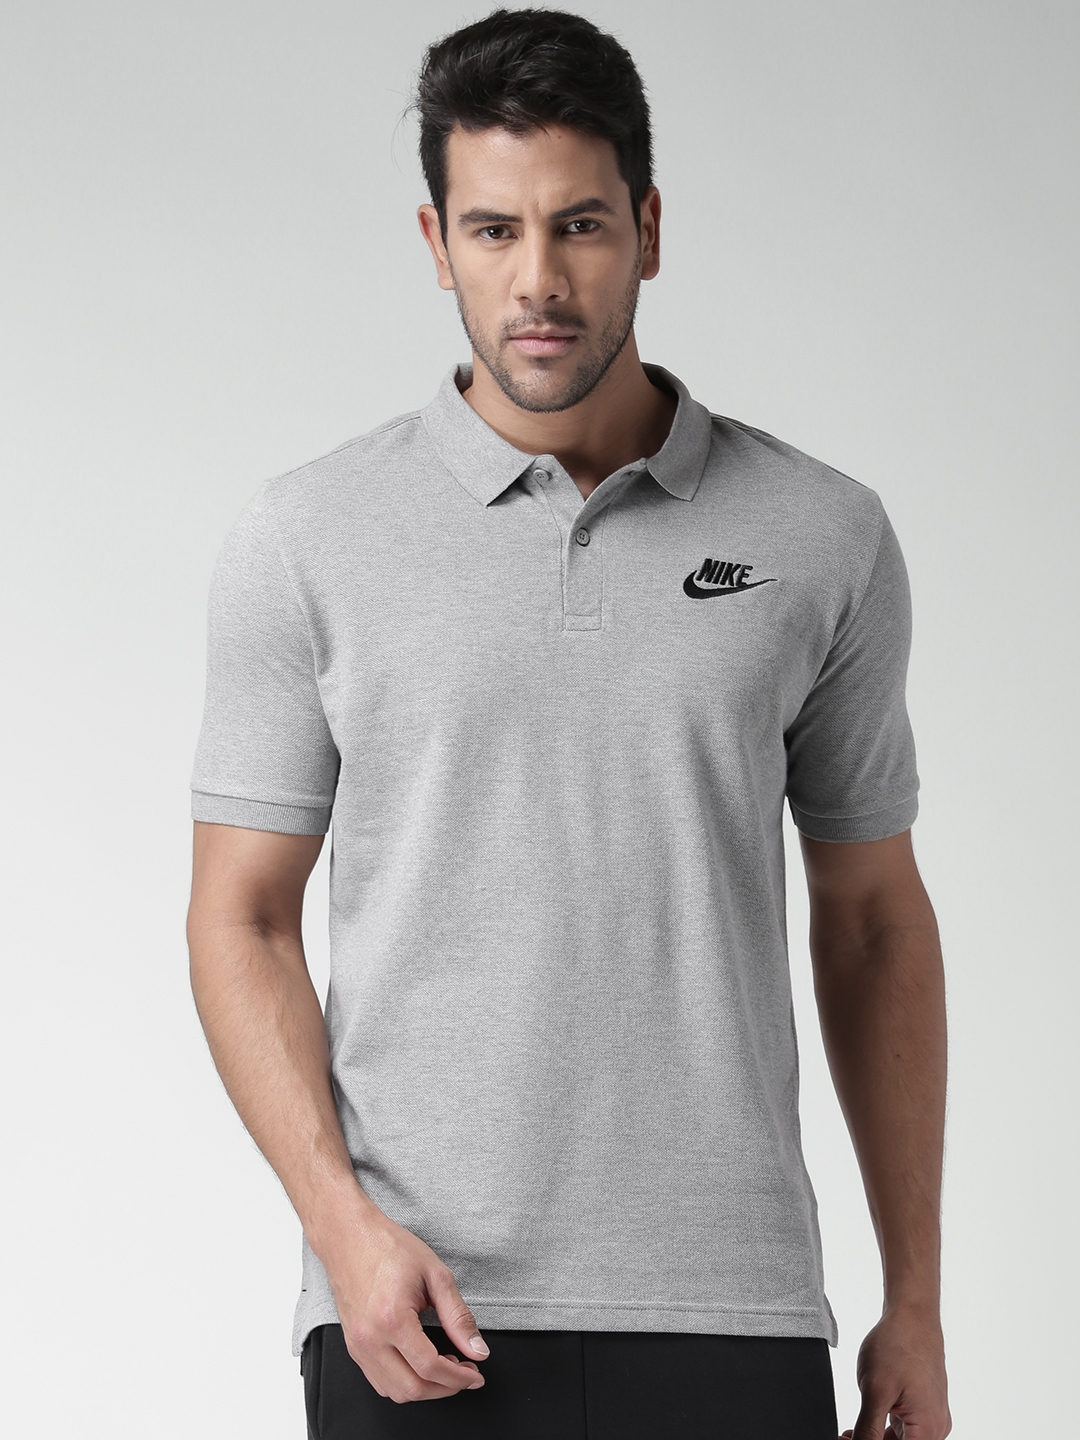 a68d02327cc49 Buy Nike Men Grey Melange AS NSW PQ Matchup Solid Polo Collar T ...